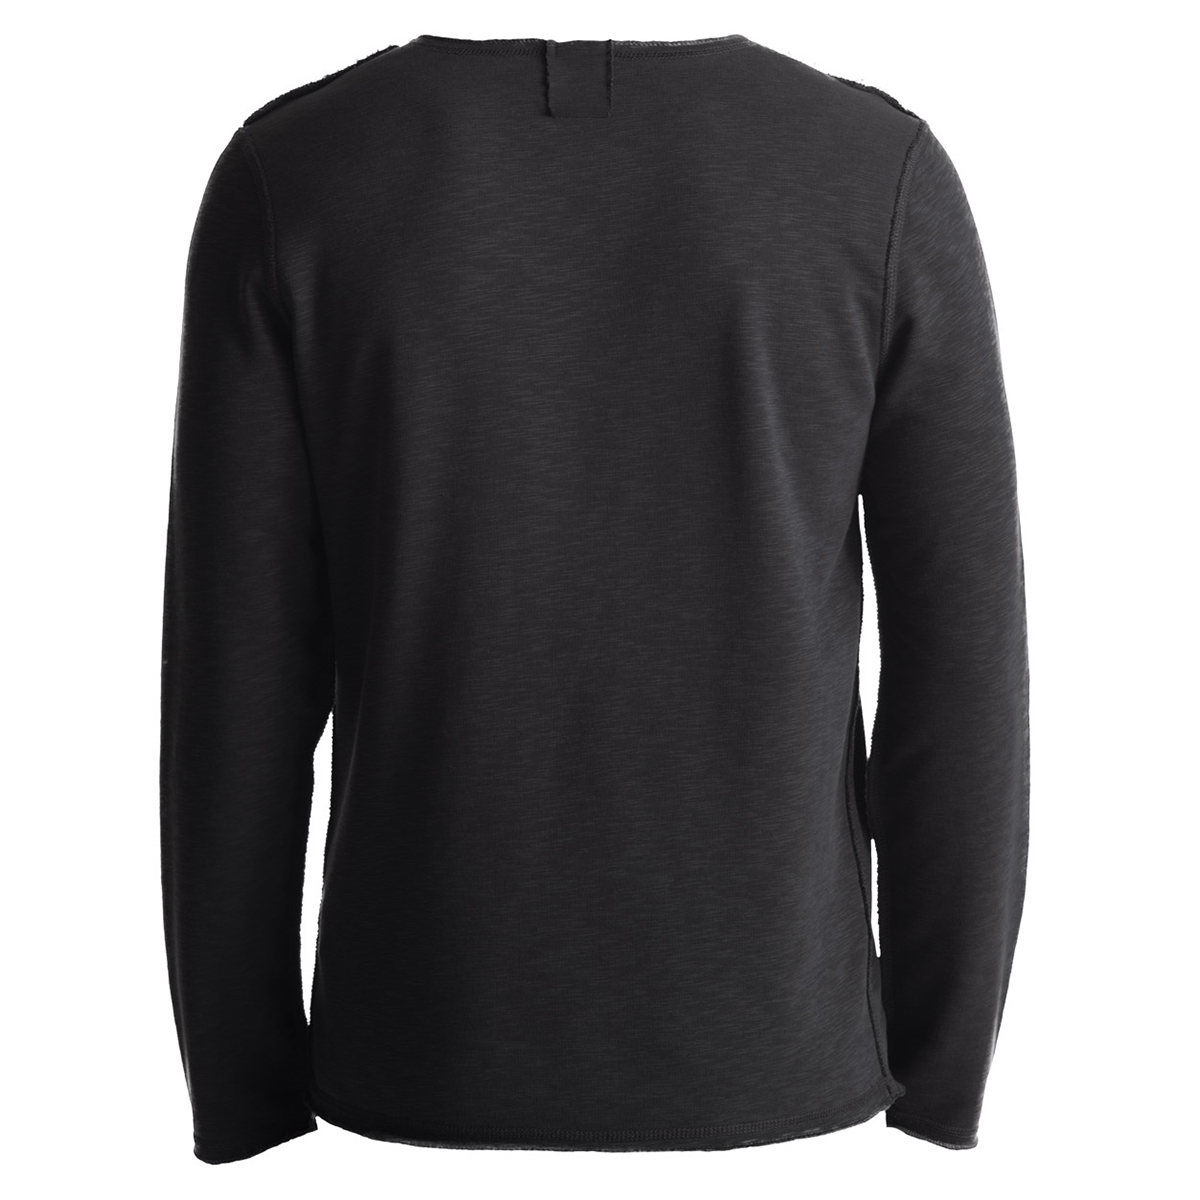 custom pullover o-neck 100% cotton mens sweatshirt without hood